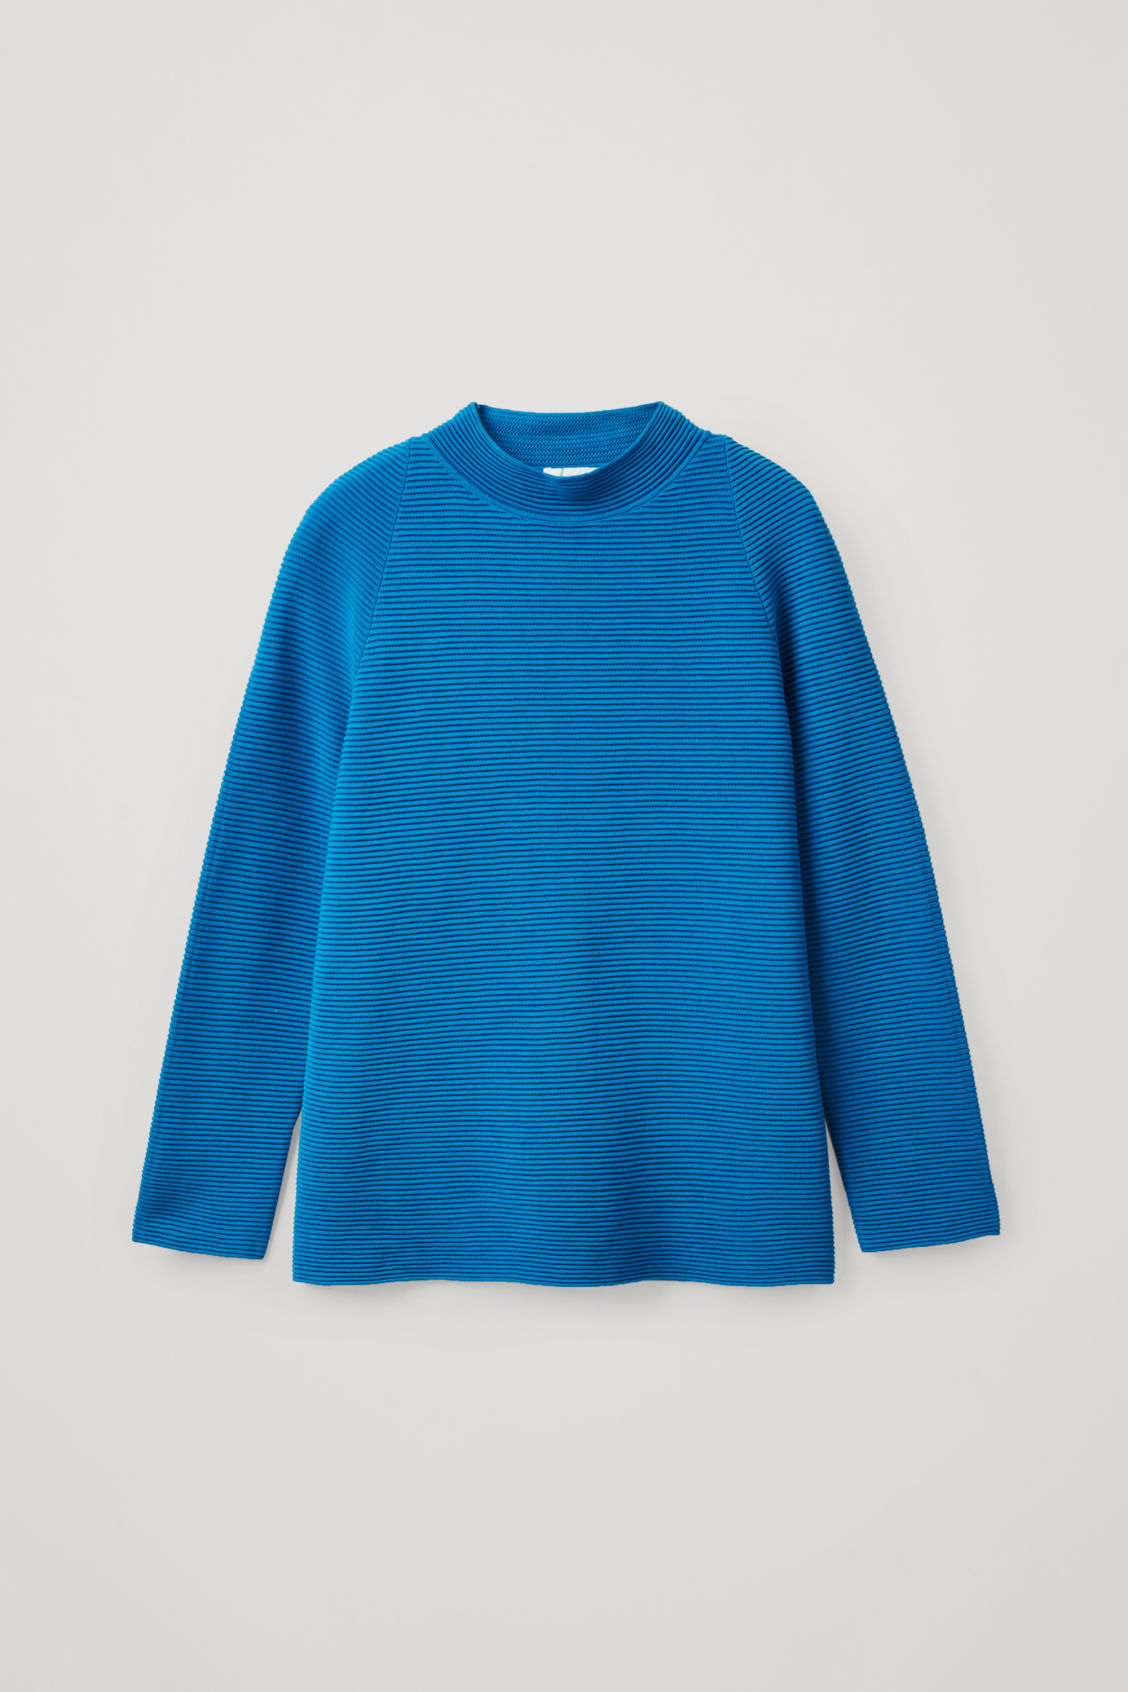 Cos Ripple-Stitch Mock Neck Top In Turquoise